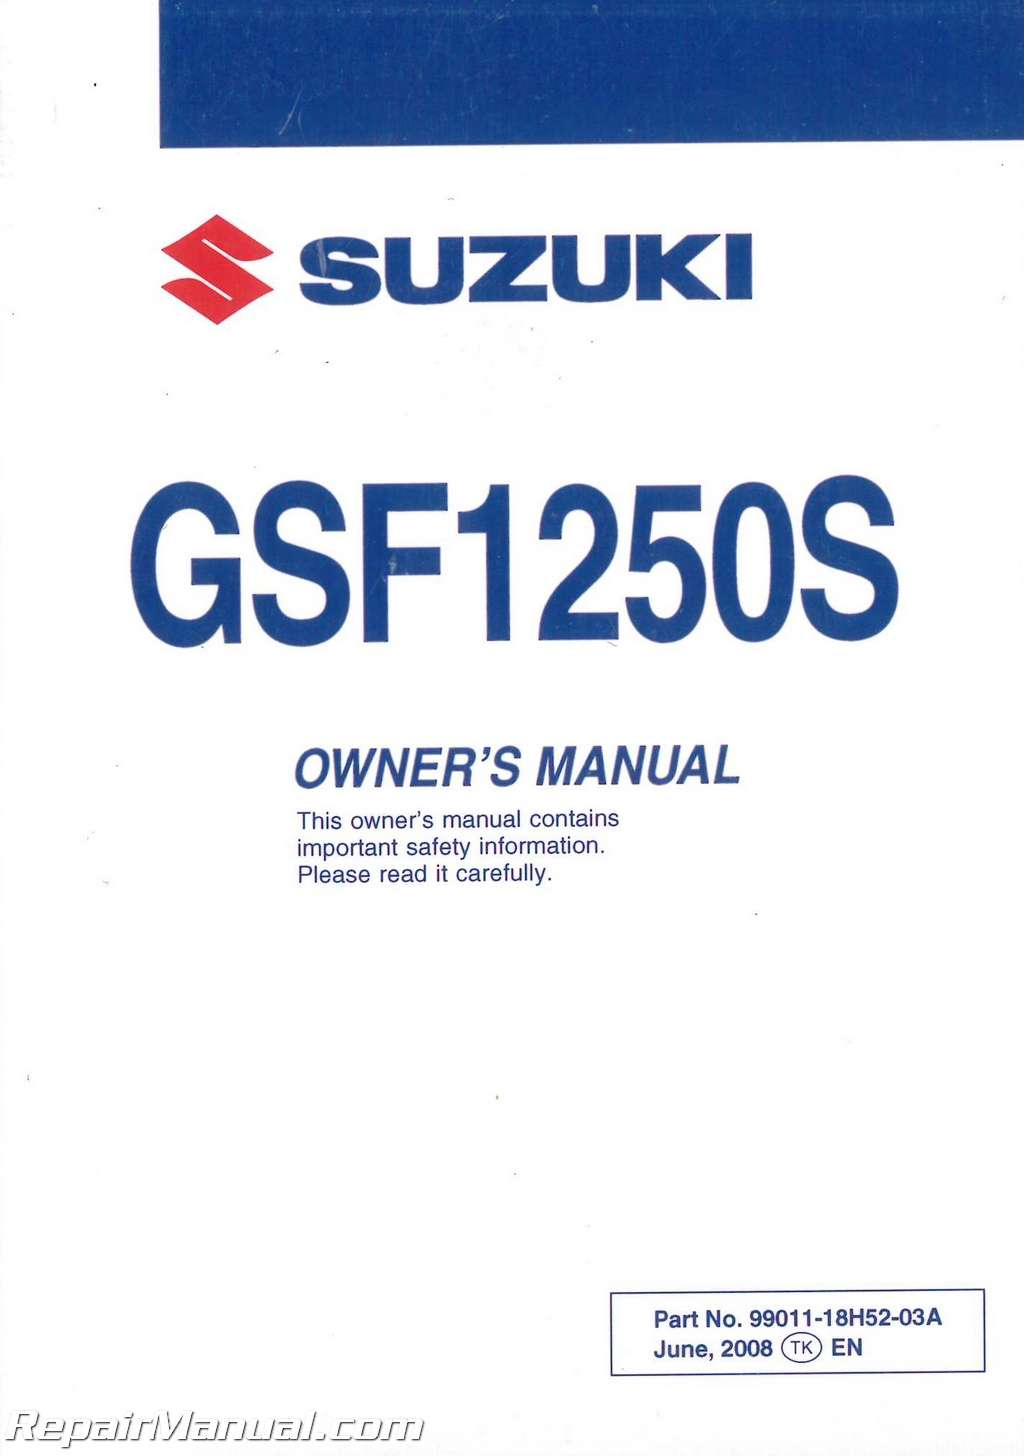 2009 suzuki bandit 1250 gsf1250s sa abs motorcycle owners manual.